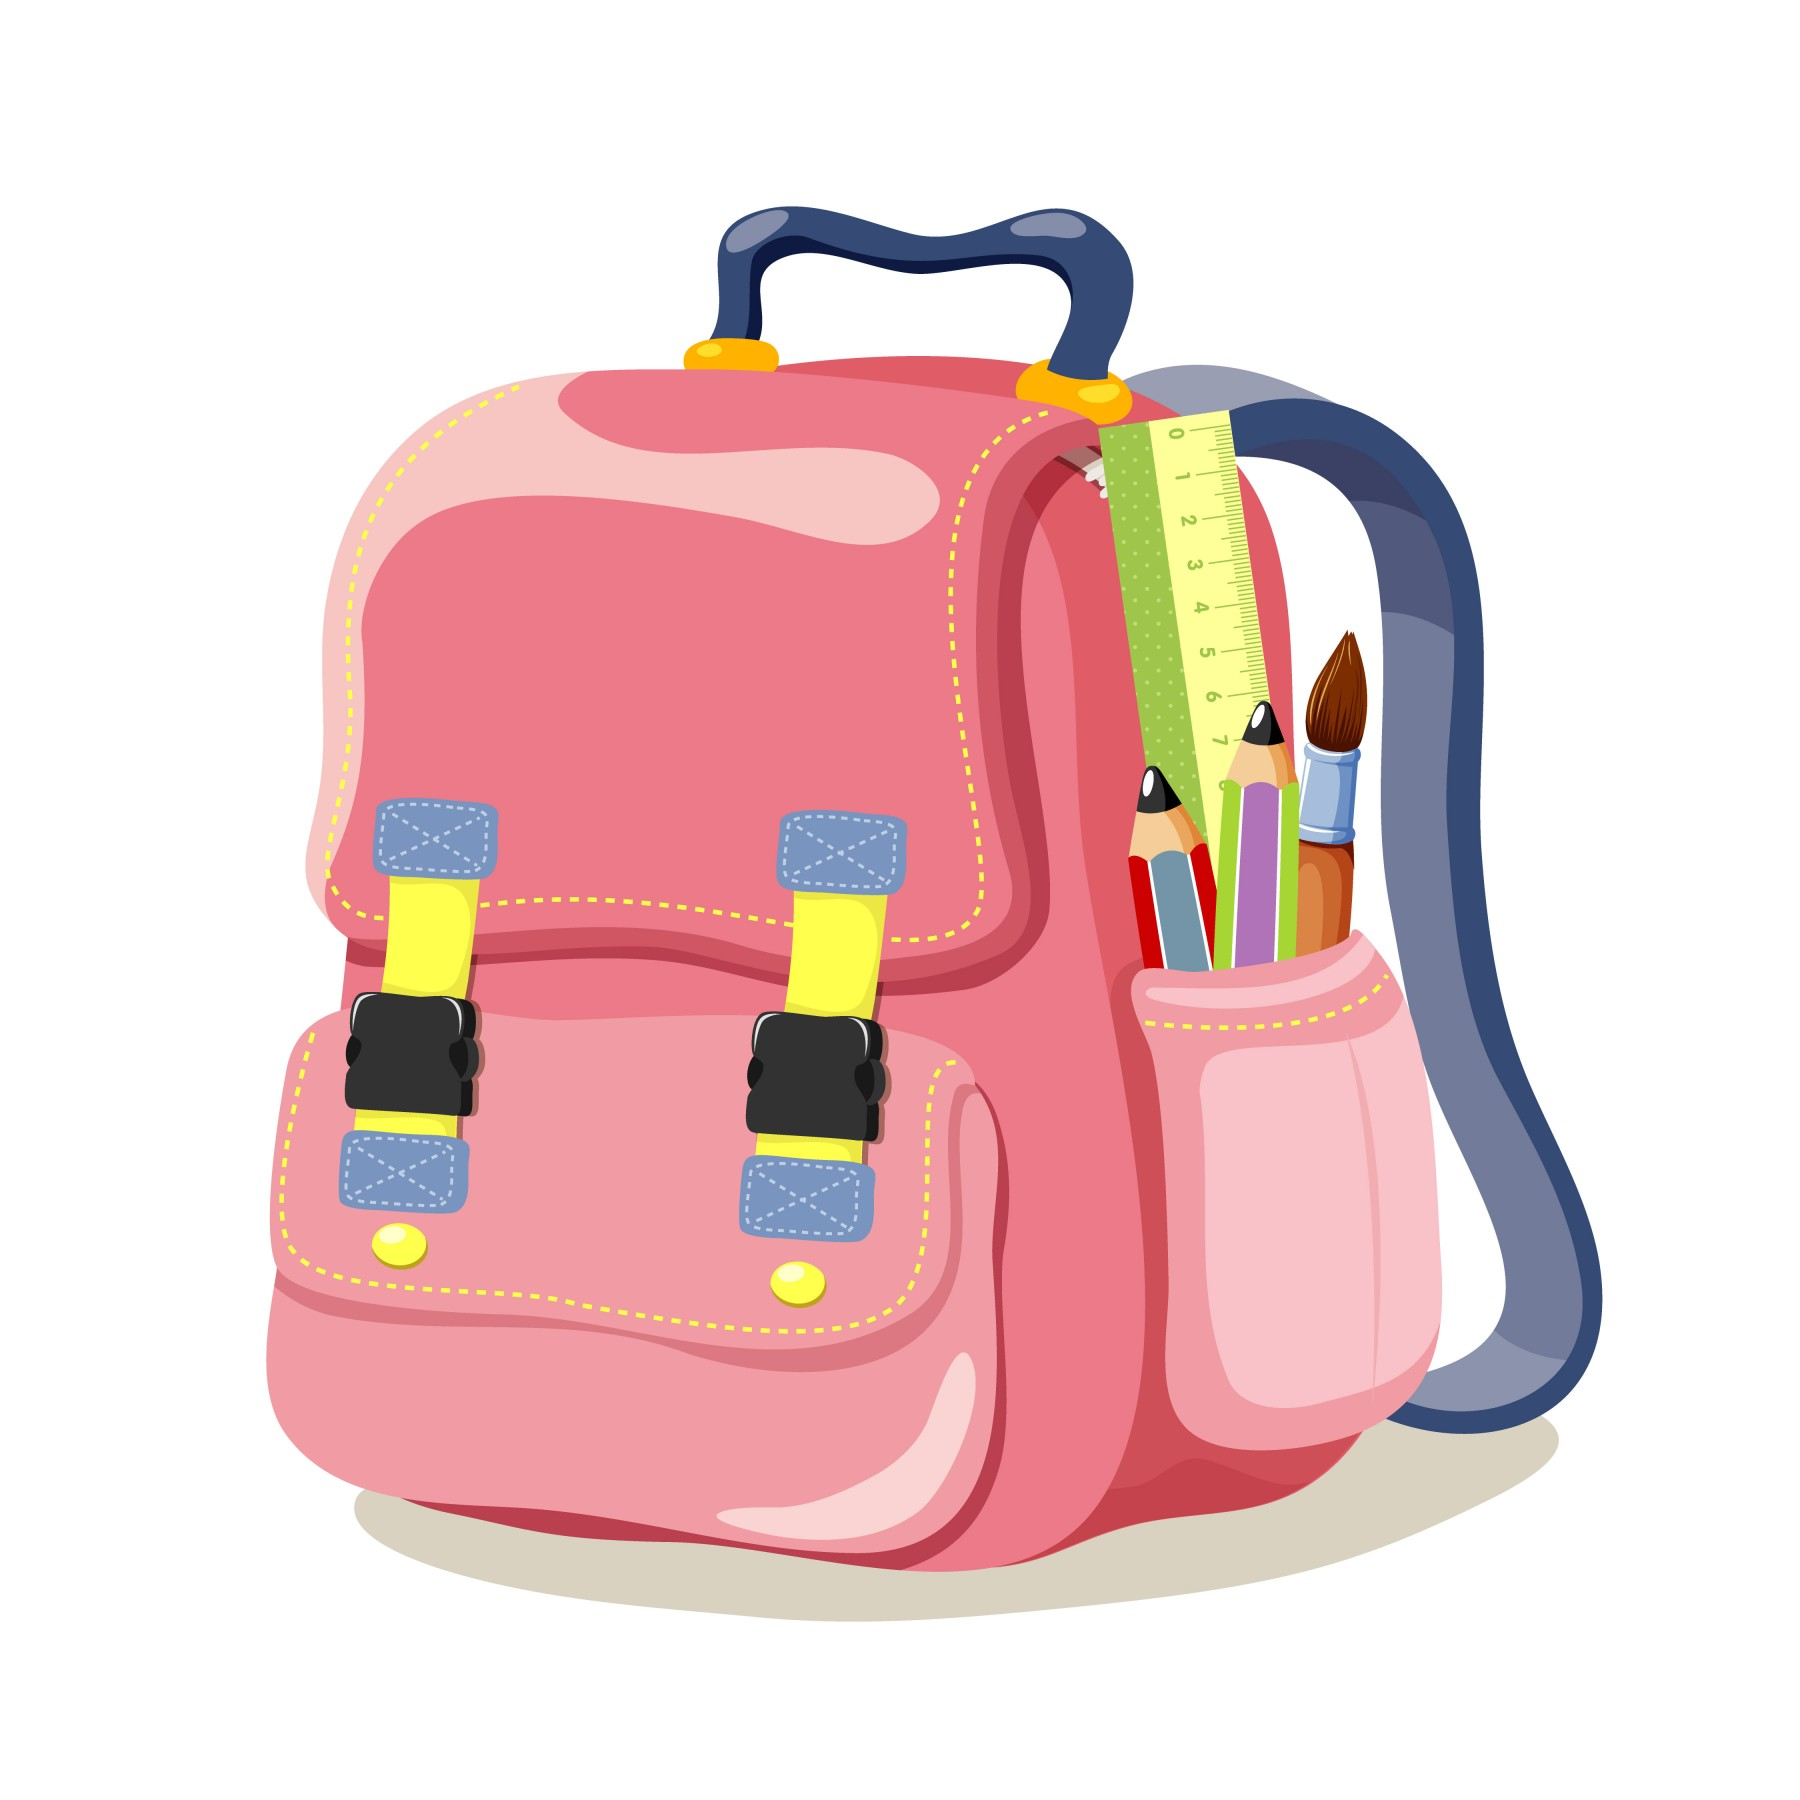 School Bag Clipart - Clipart Kid